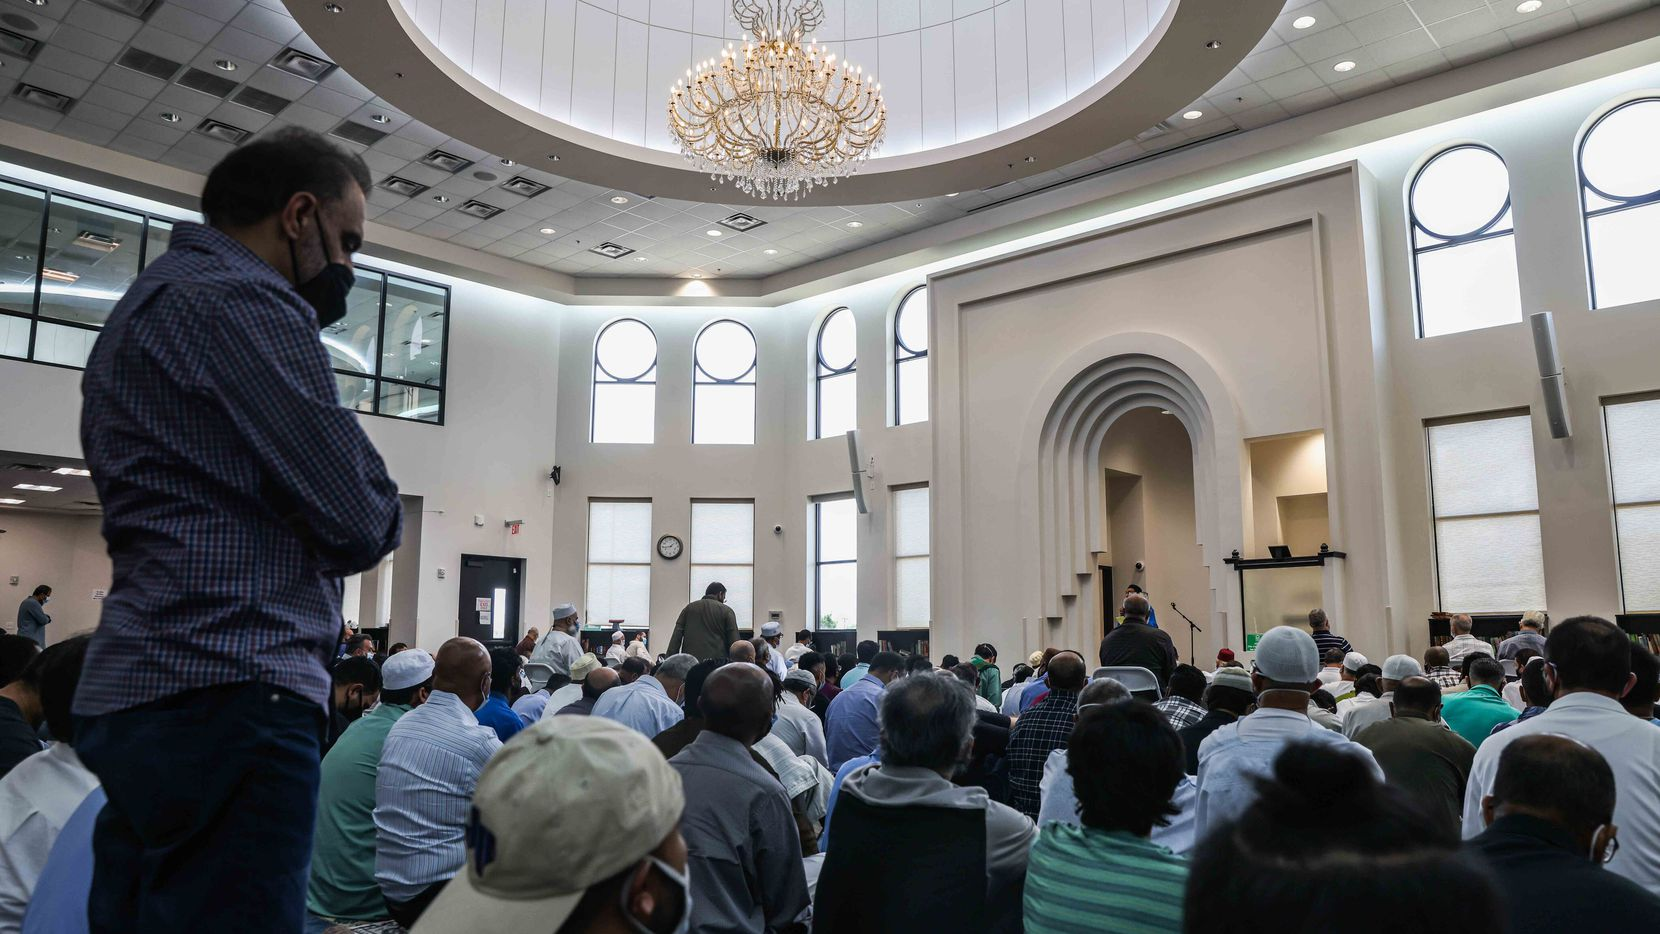 A group of Muslim men gather at the mosque main prayer hall to celebrate Friday afternoon prayer and lecture at the East Plano Islamic Center on August 27, 2021.